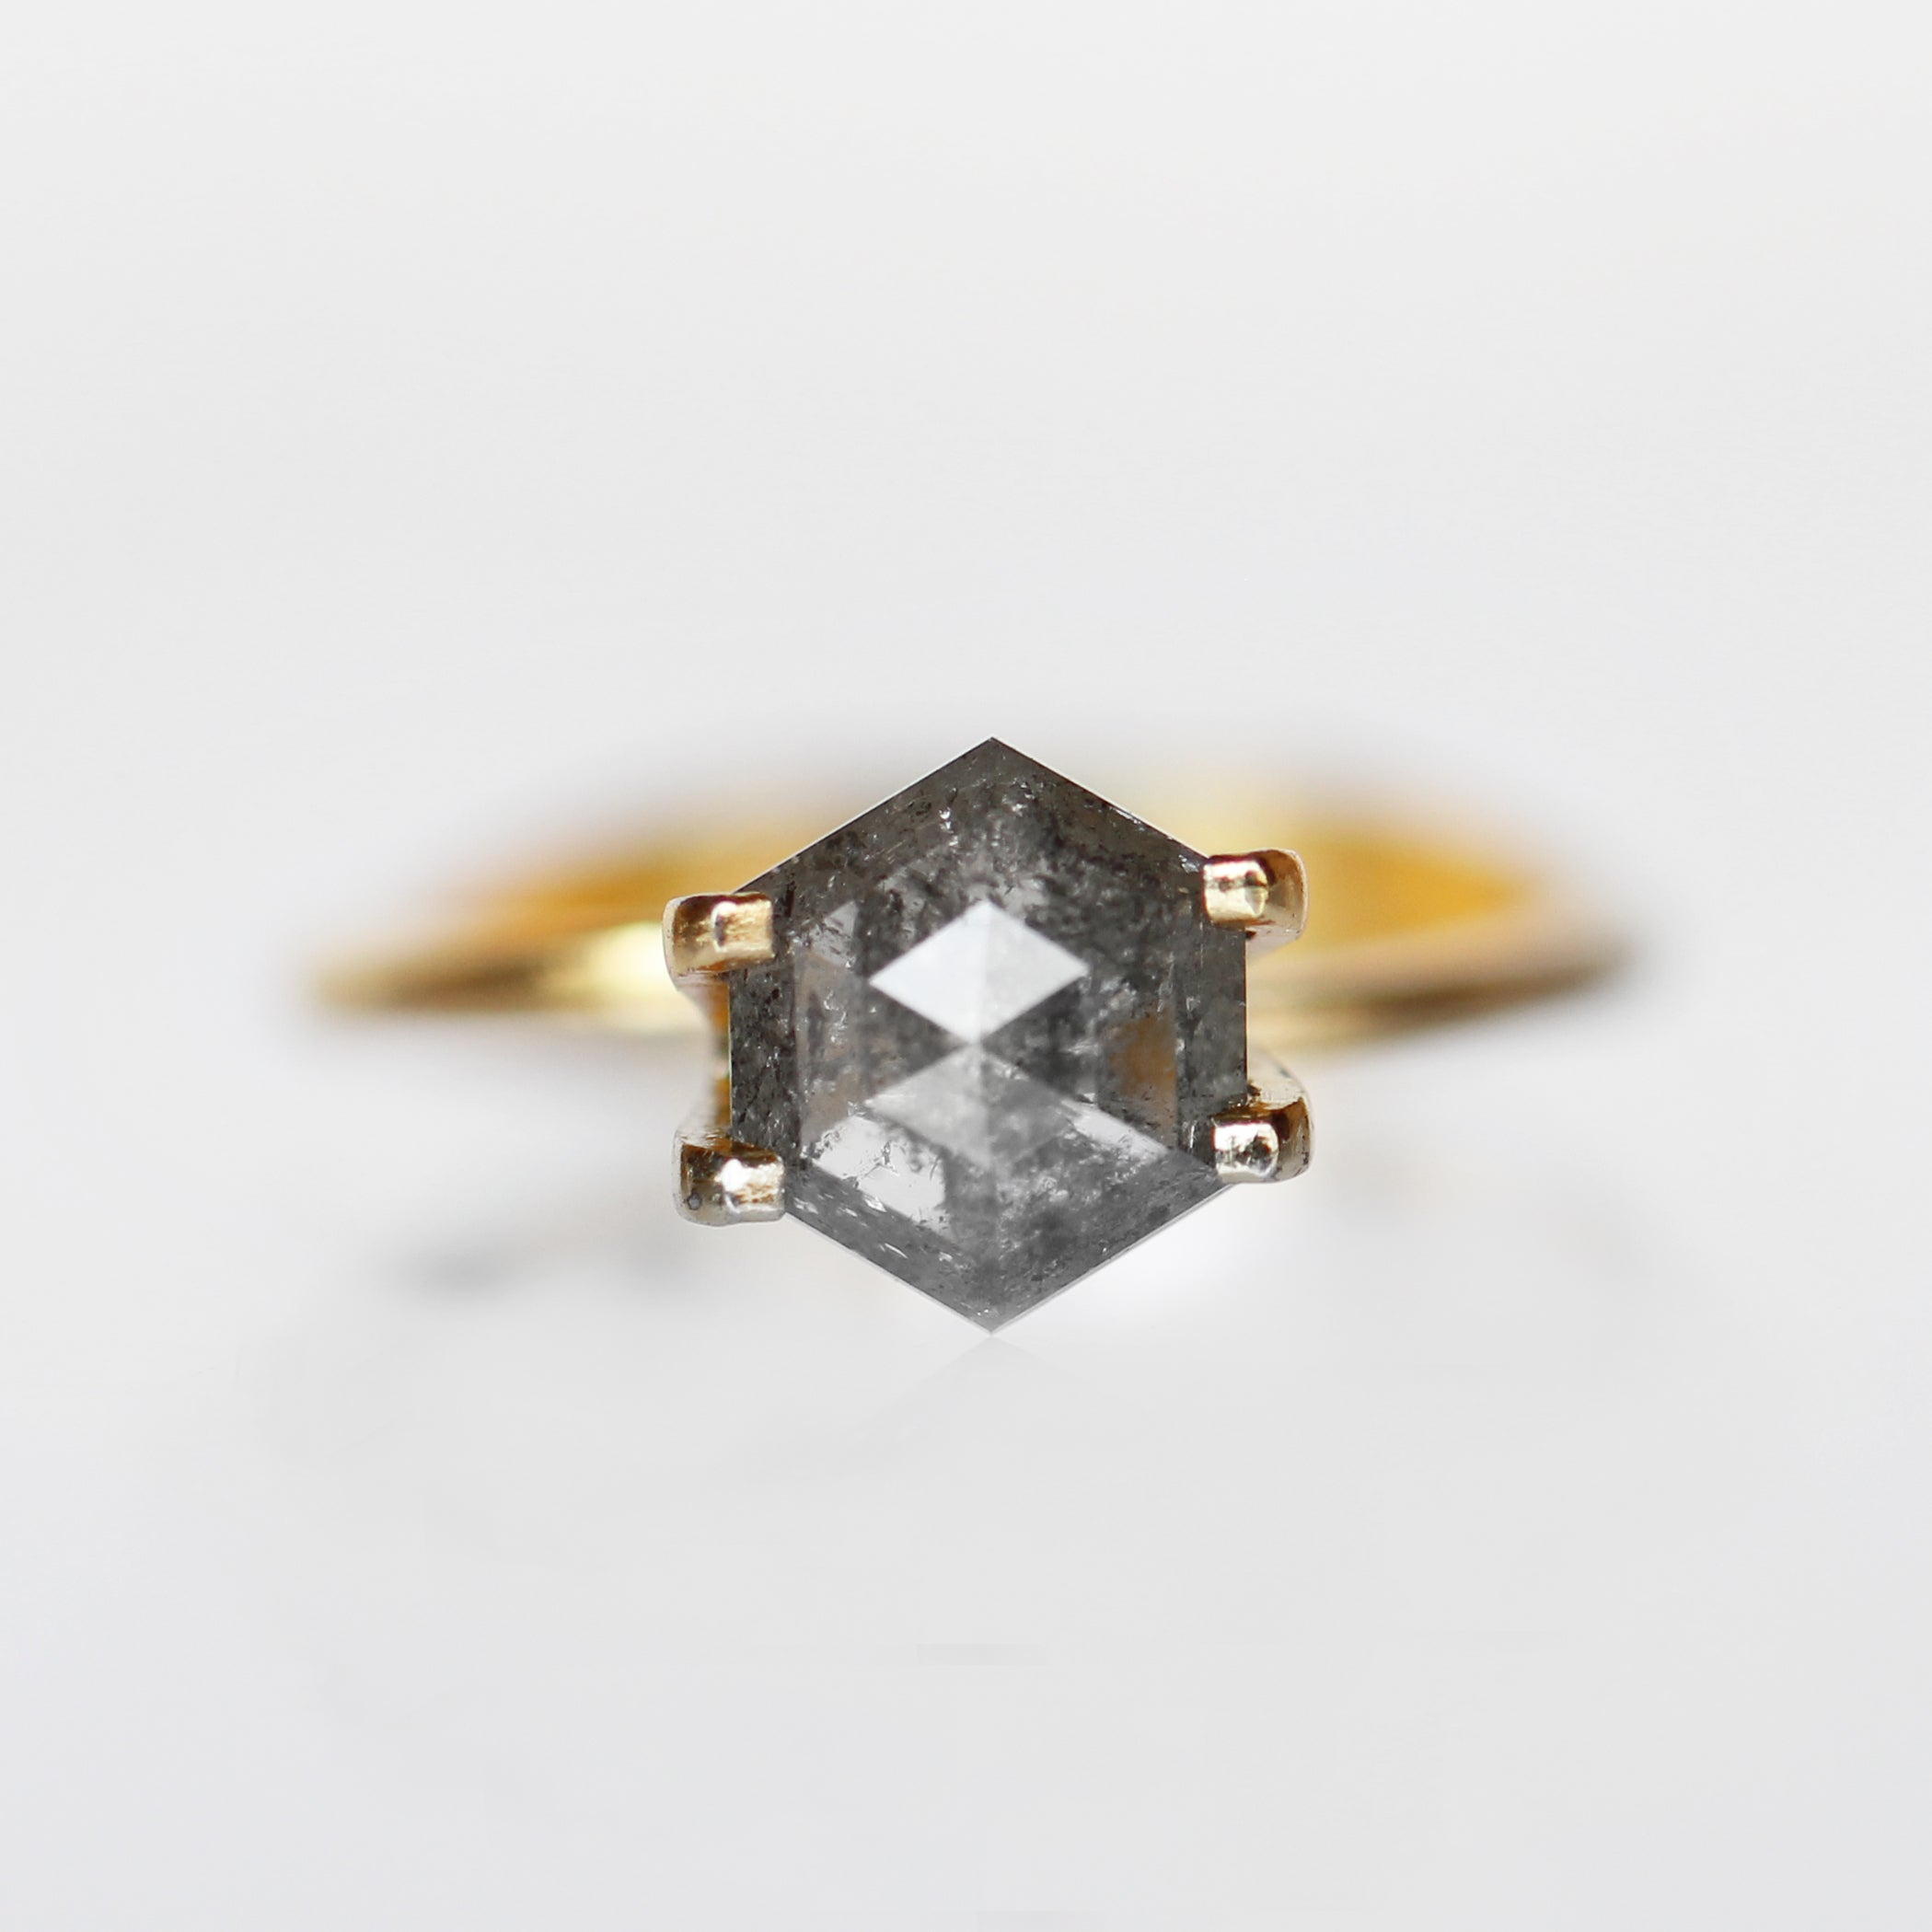 1.61 Carat Hexagon Celestial Diamond- Inventory Code HRG161 - Celestial Diamonds ® by Midwinter Co.